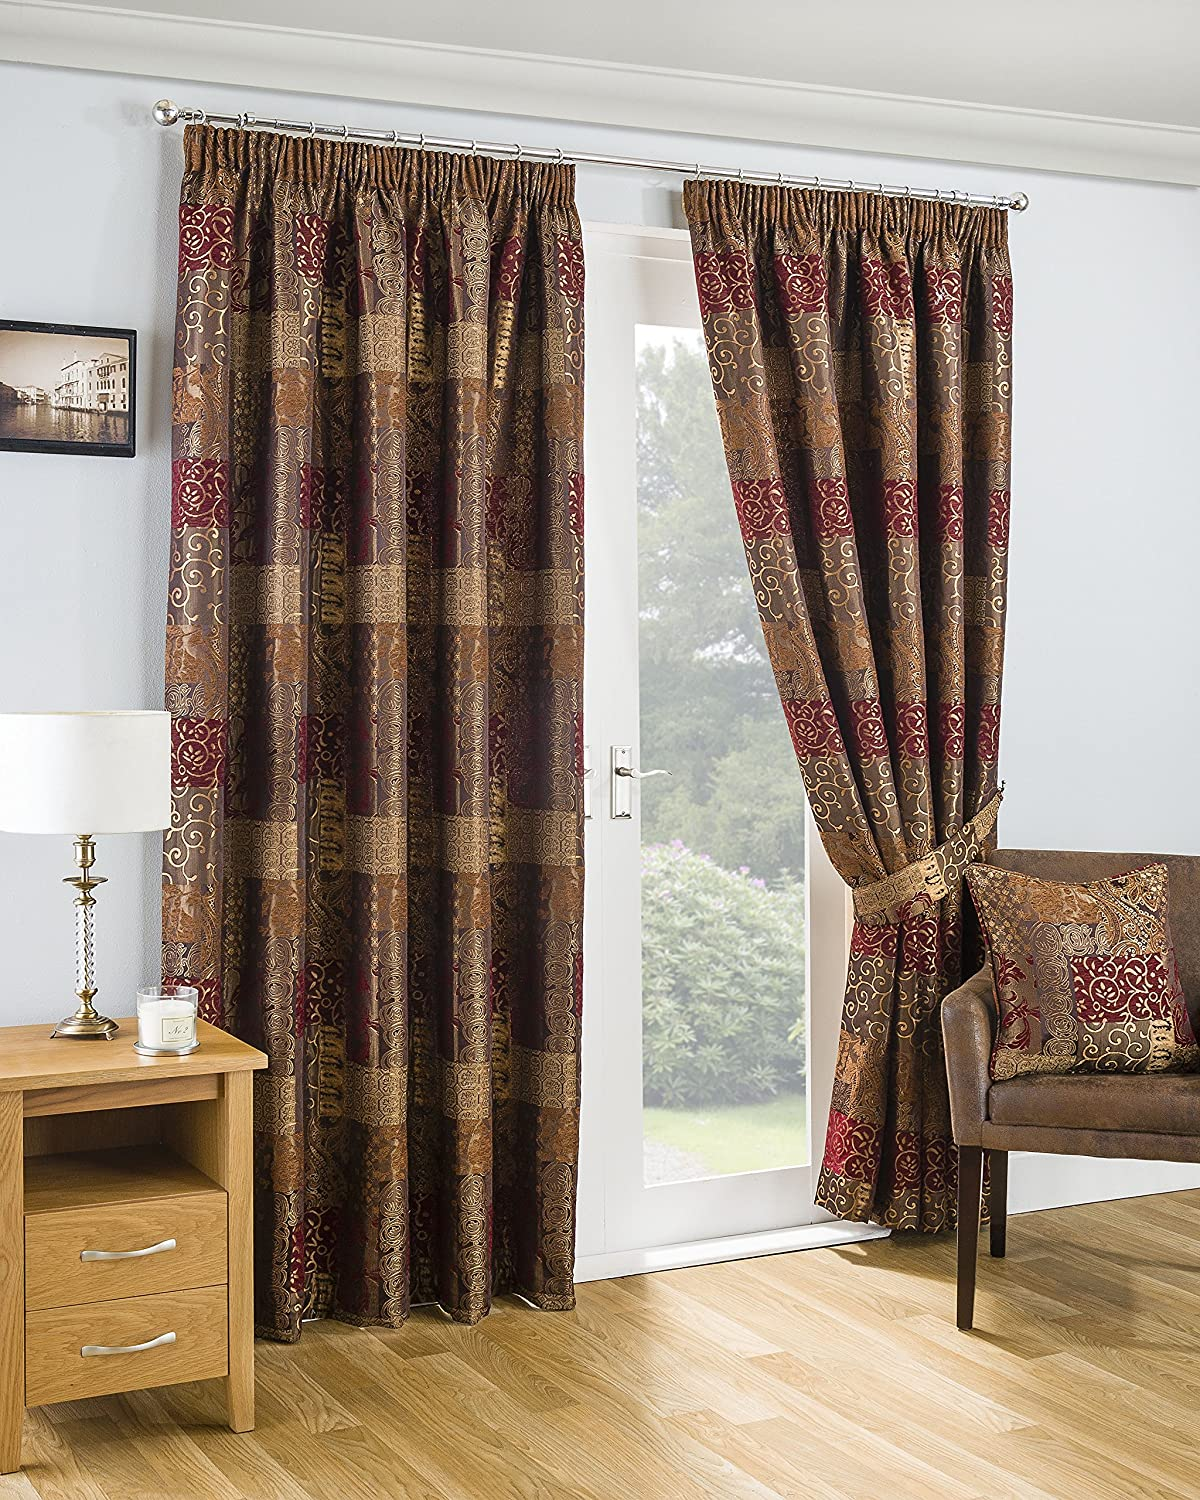 Ians Emporium One Pair Of CASAwhiteA Mgoldccan Style Lined 3  Pencil Pleat Curtains - TERRACOTTA - 90  W x 90  L - Curtains At Home